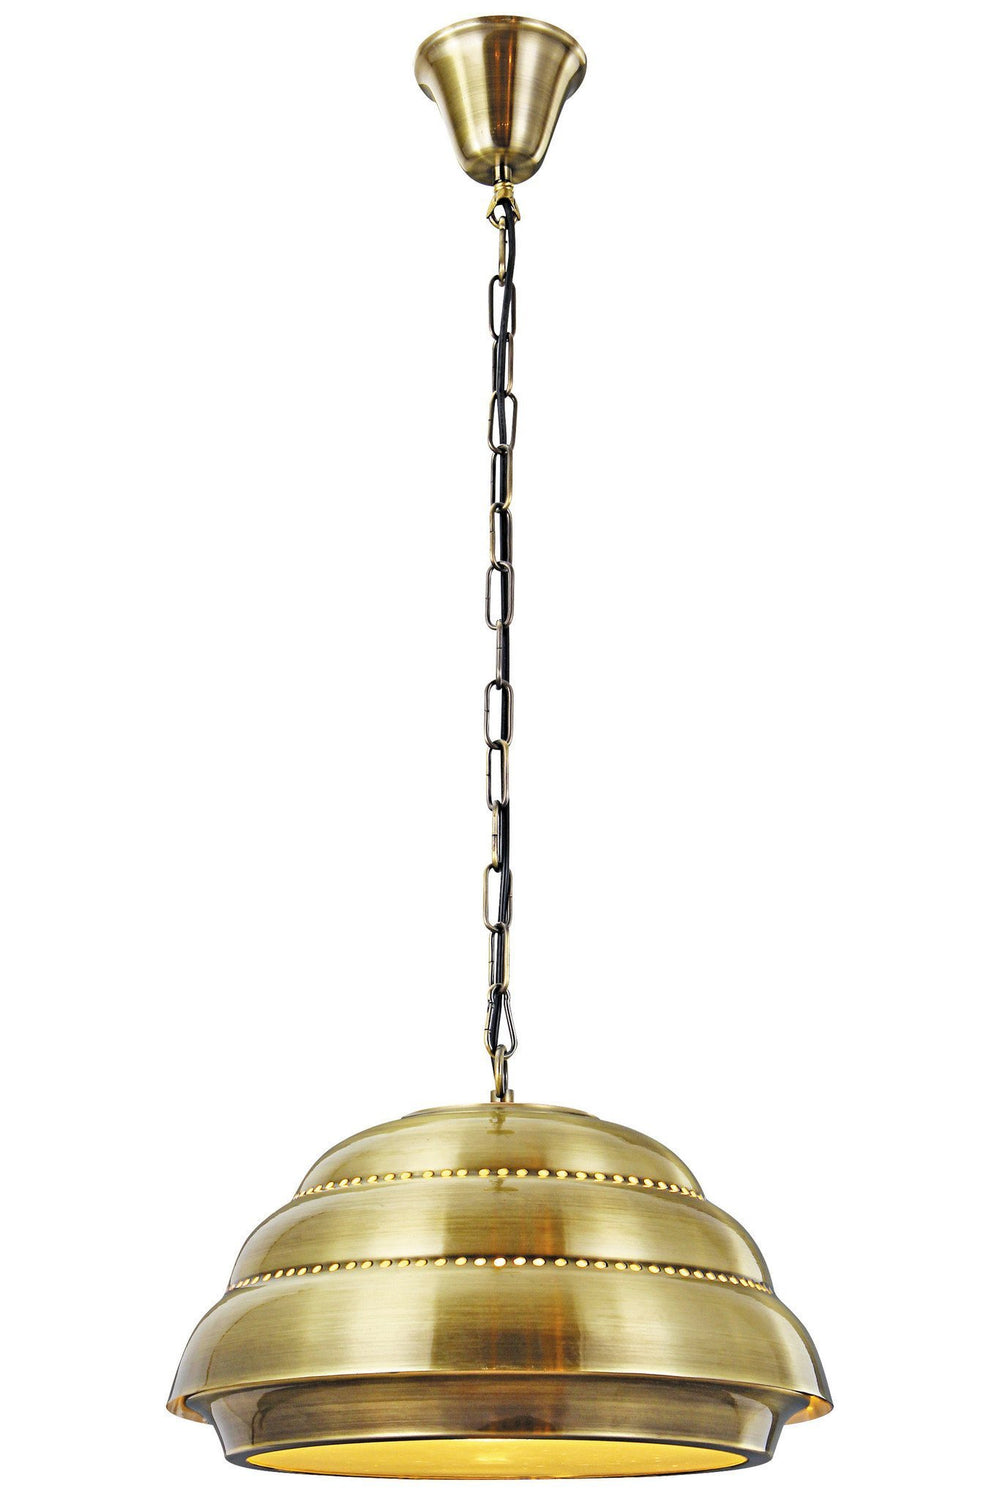 PD1237 Elegant Lighting Industrial 1 Light Pendant Chandelier